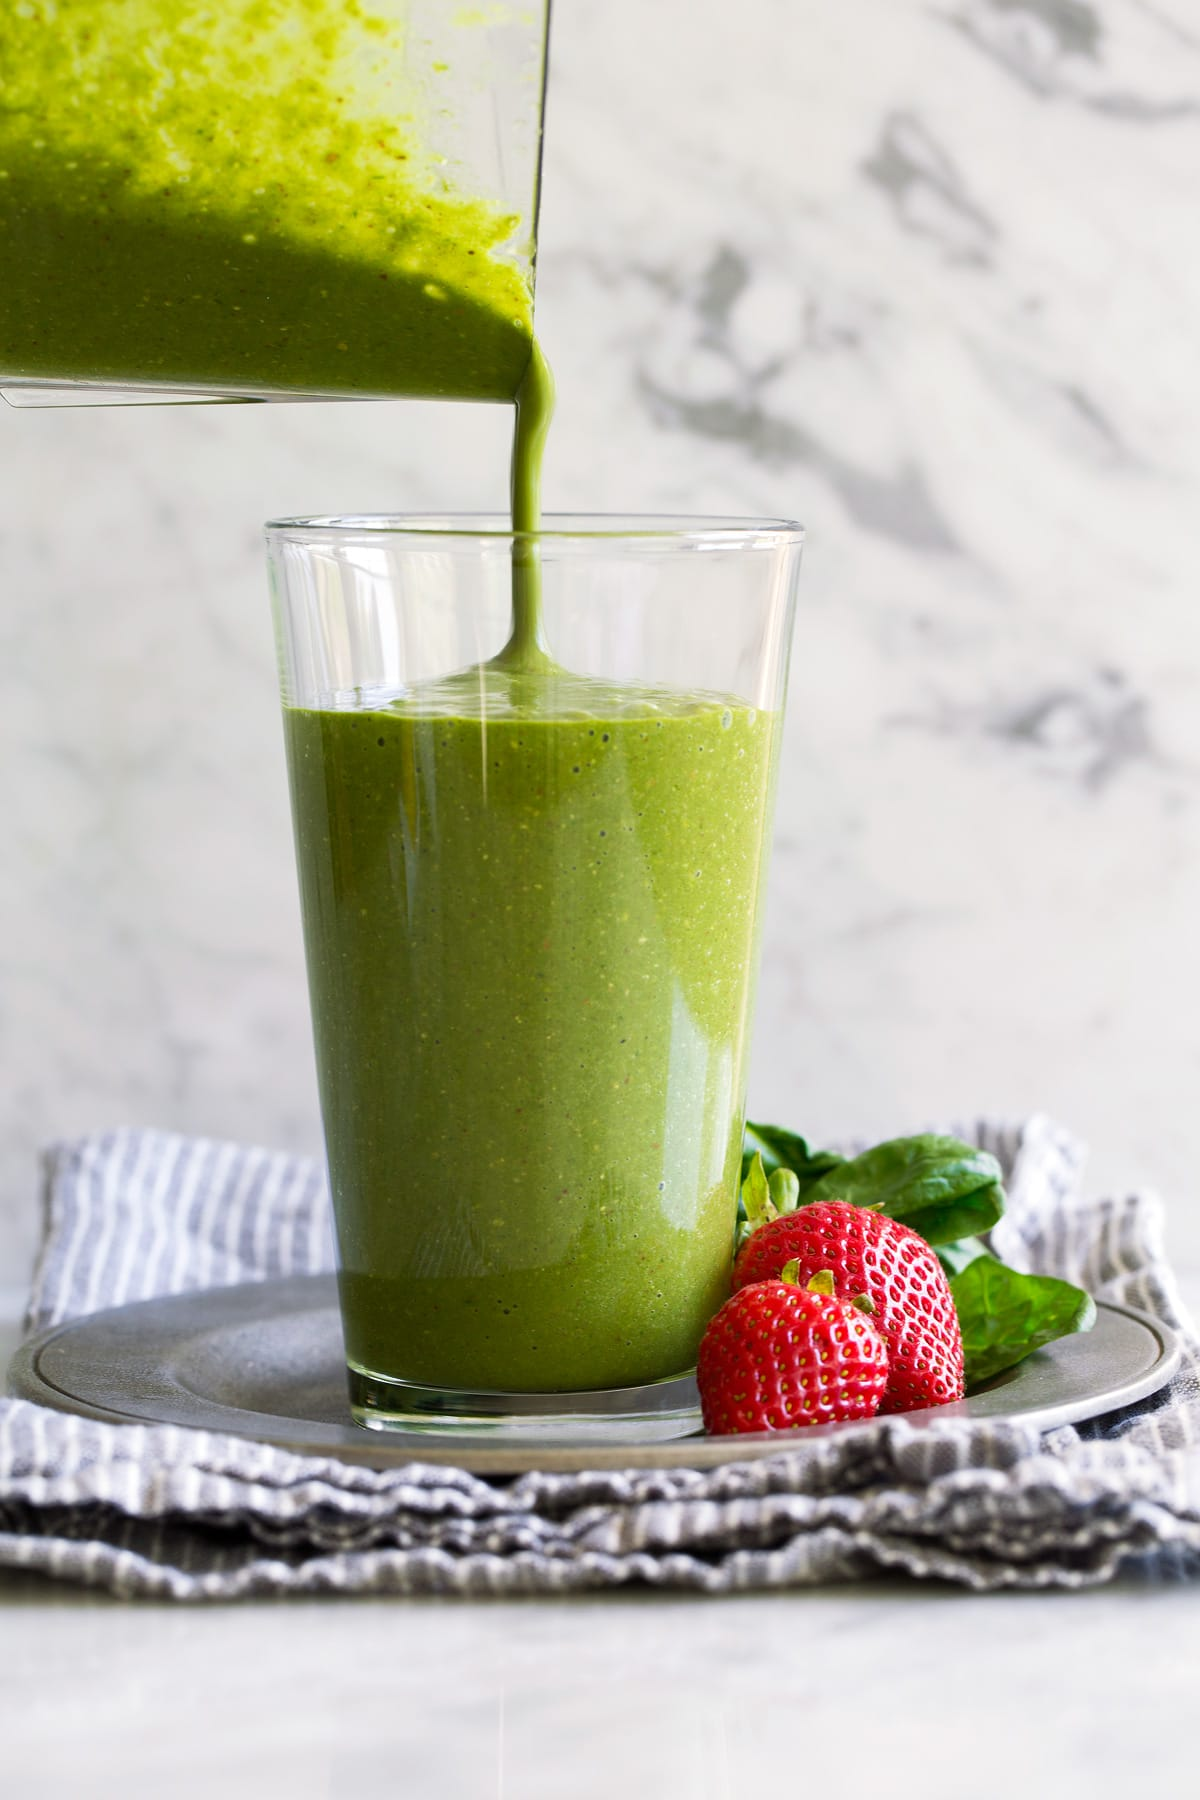 Pouring green smoothie into a glass from a blender jar.